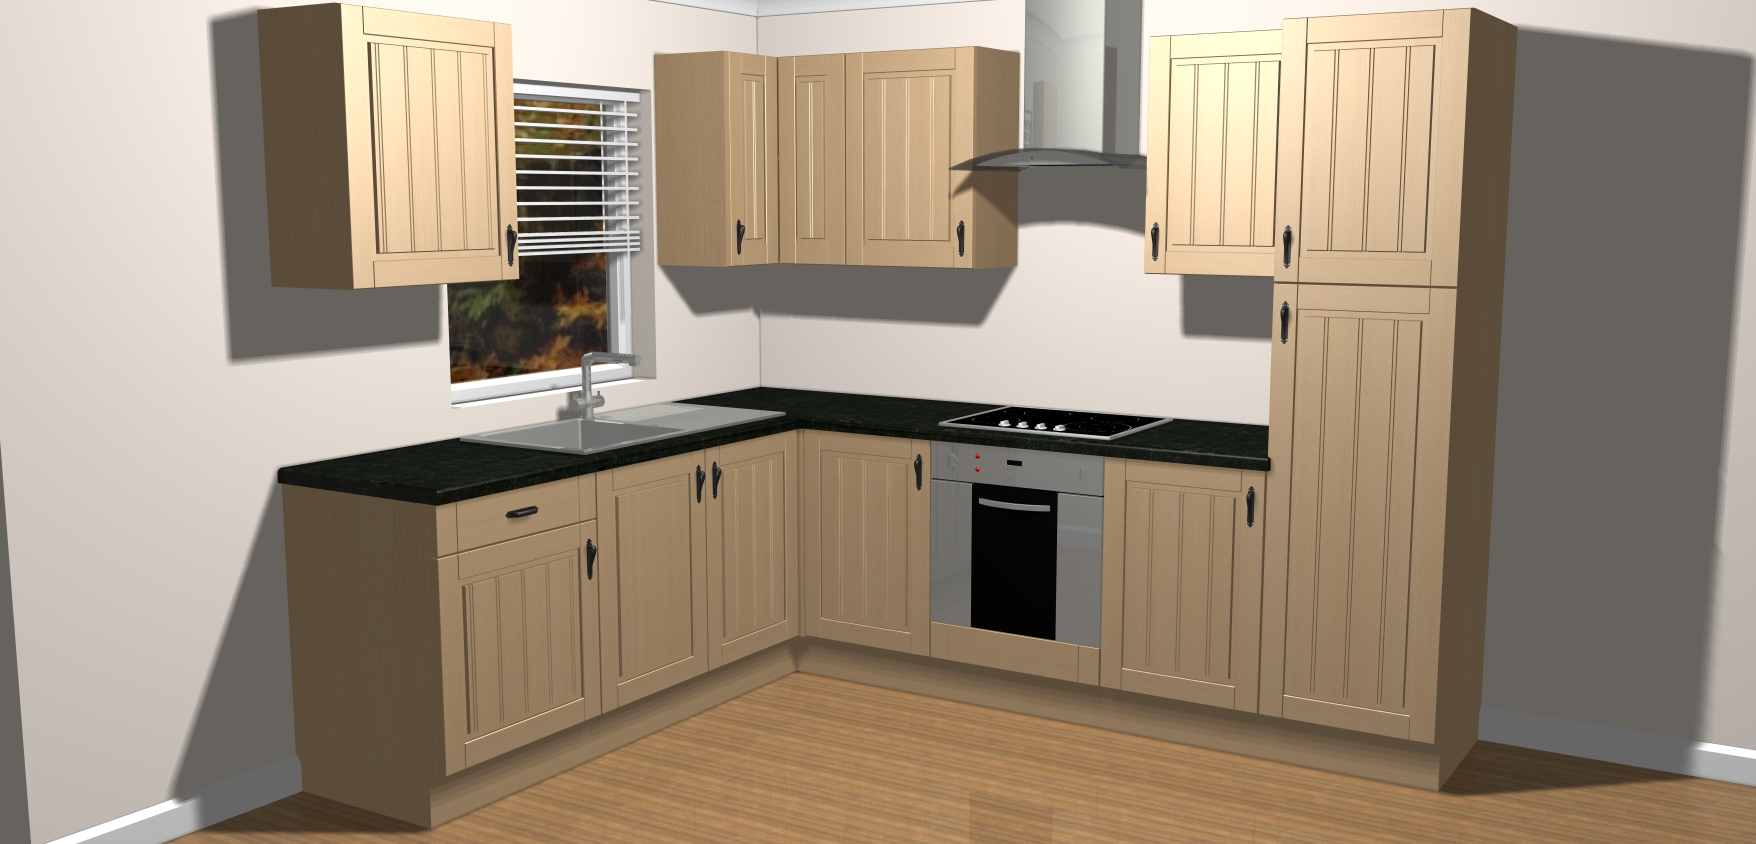 New avondale ivory complete fitted kitchen units ebay for Small kitchen unit ideas